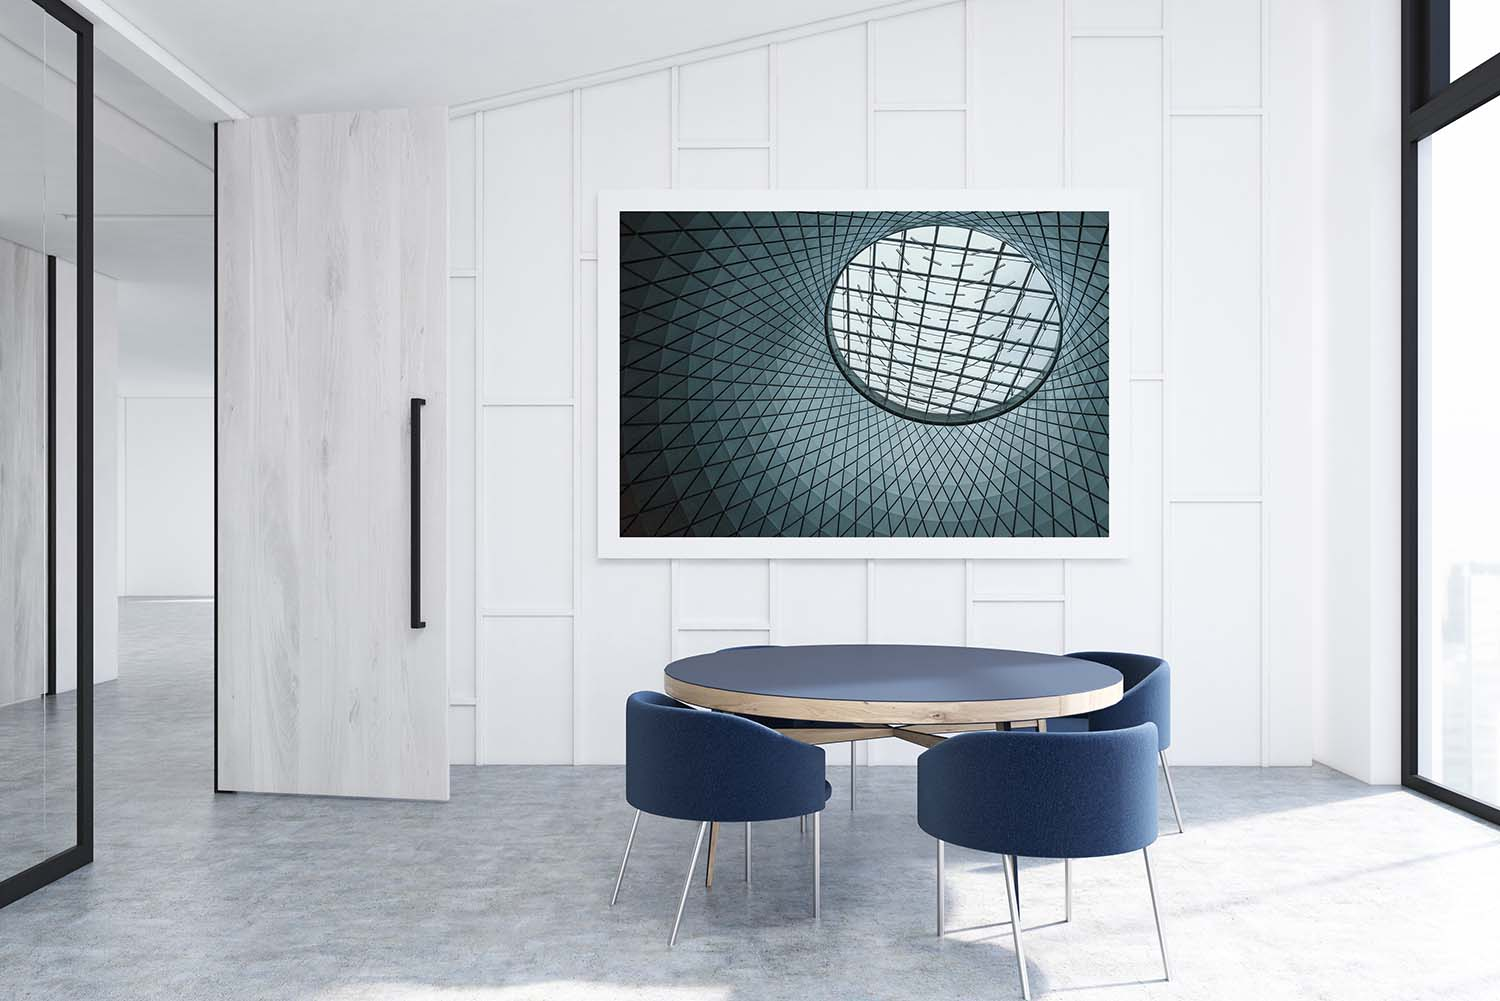 Office with white walls. Waiting area with a round table surrounded by armchairs. Horizontal poster on the wall.